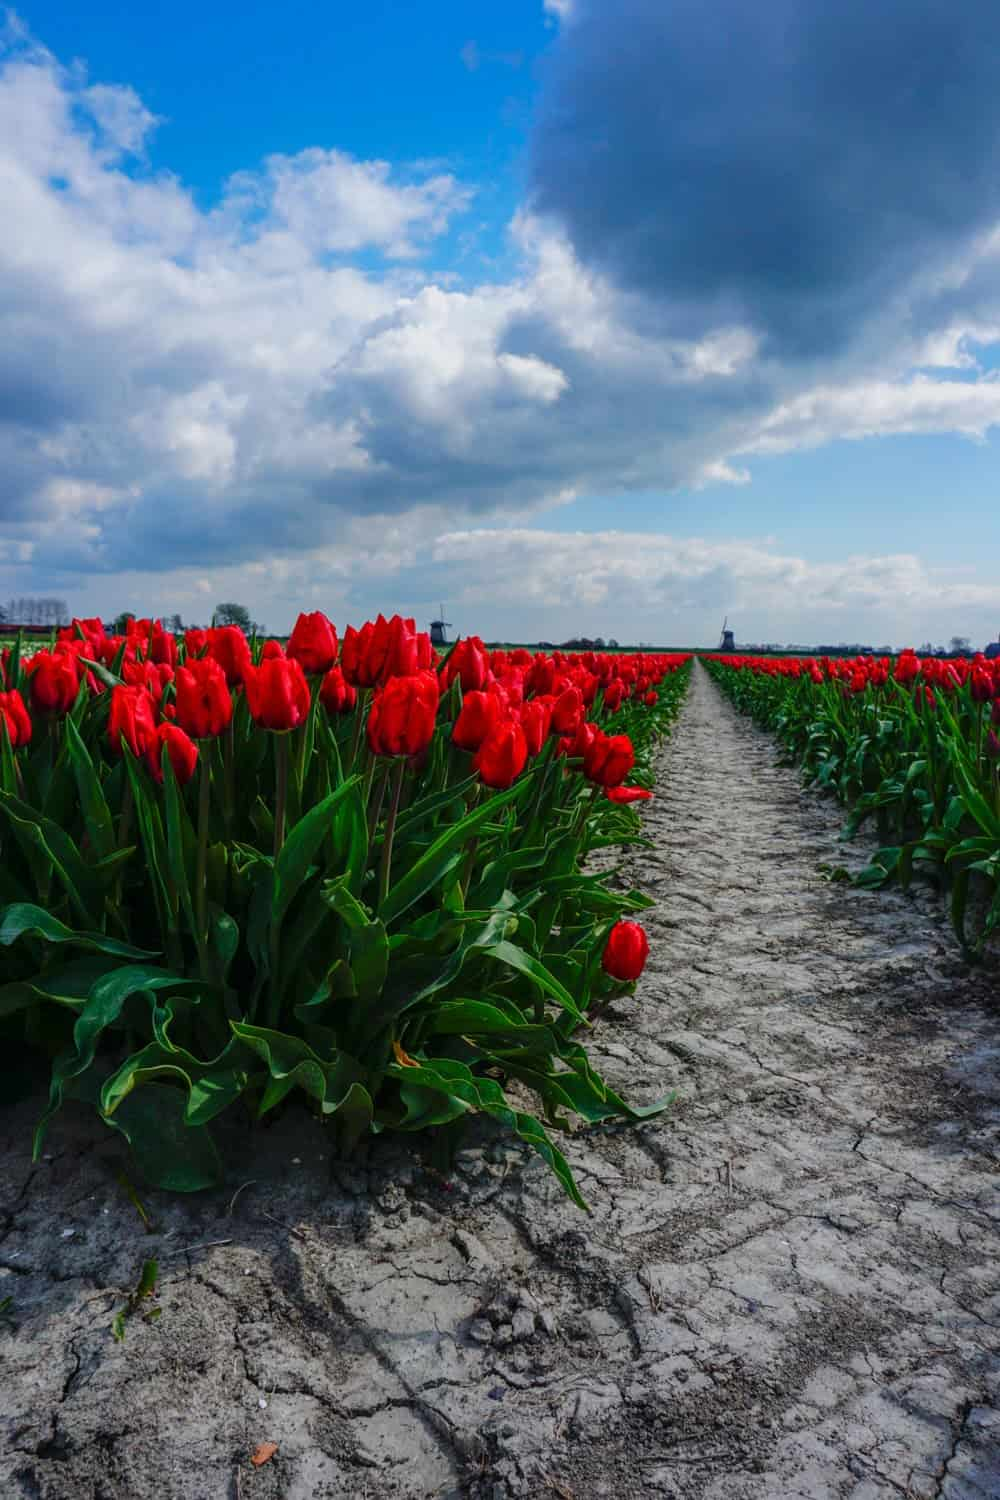 Your ultimate tulip fields in Netherlands guide and how to see the tulip fields near Amsterdam, and without the crowds. Take beautiful tulip fields Netherlands photography that you will have forever, and see other Netherlands travel destinations you never thought about. #travel #tulips #netherlands